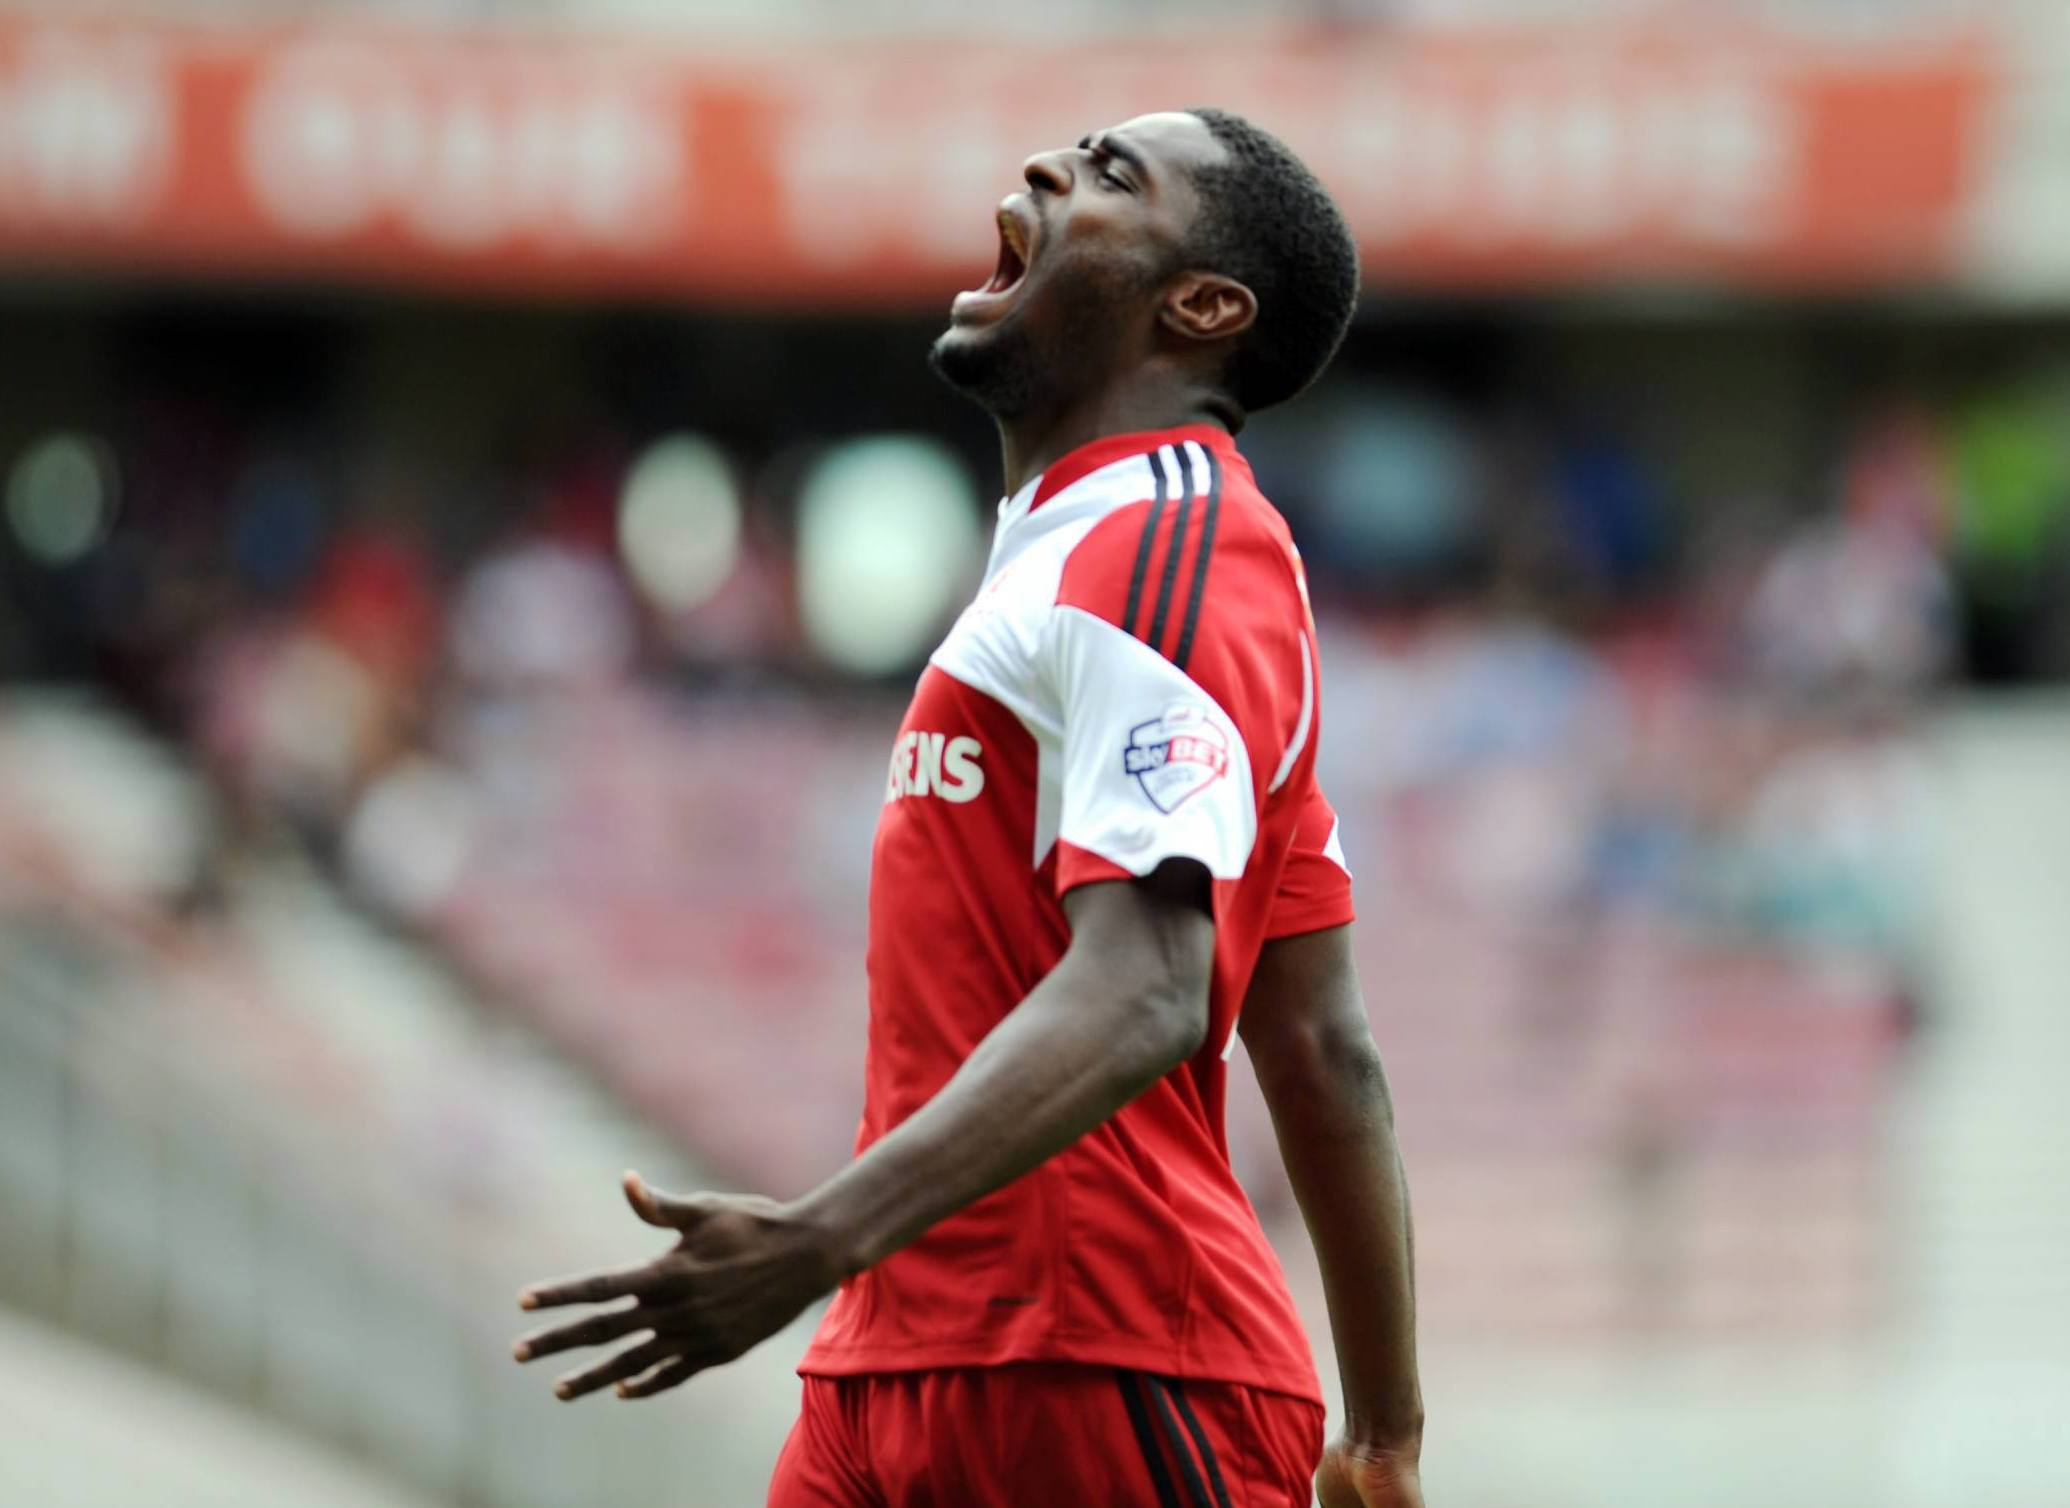 Mustapha Carayol had given Middlesbrough a 22nd minute lead at St Andrew's